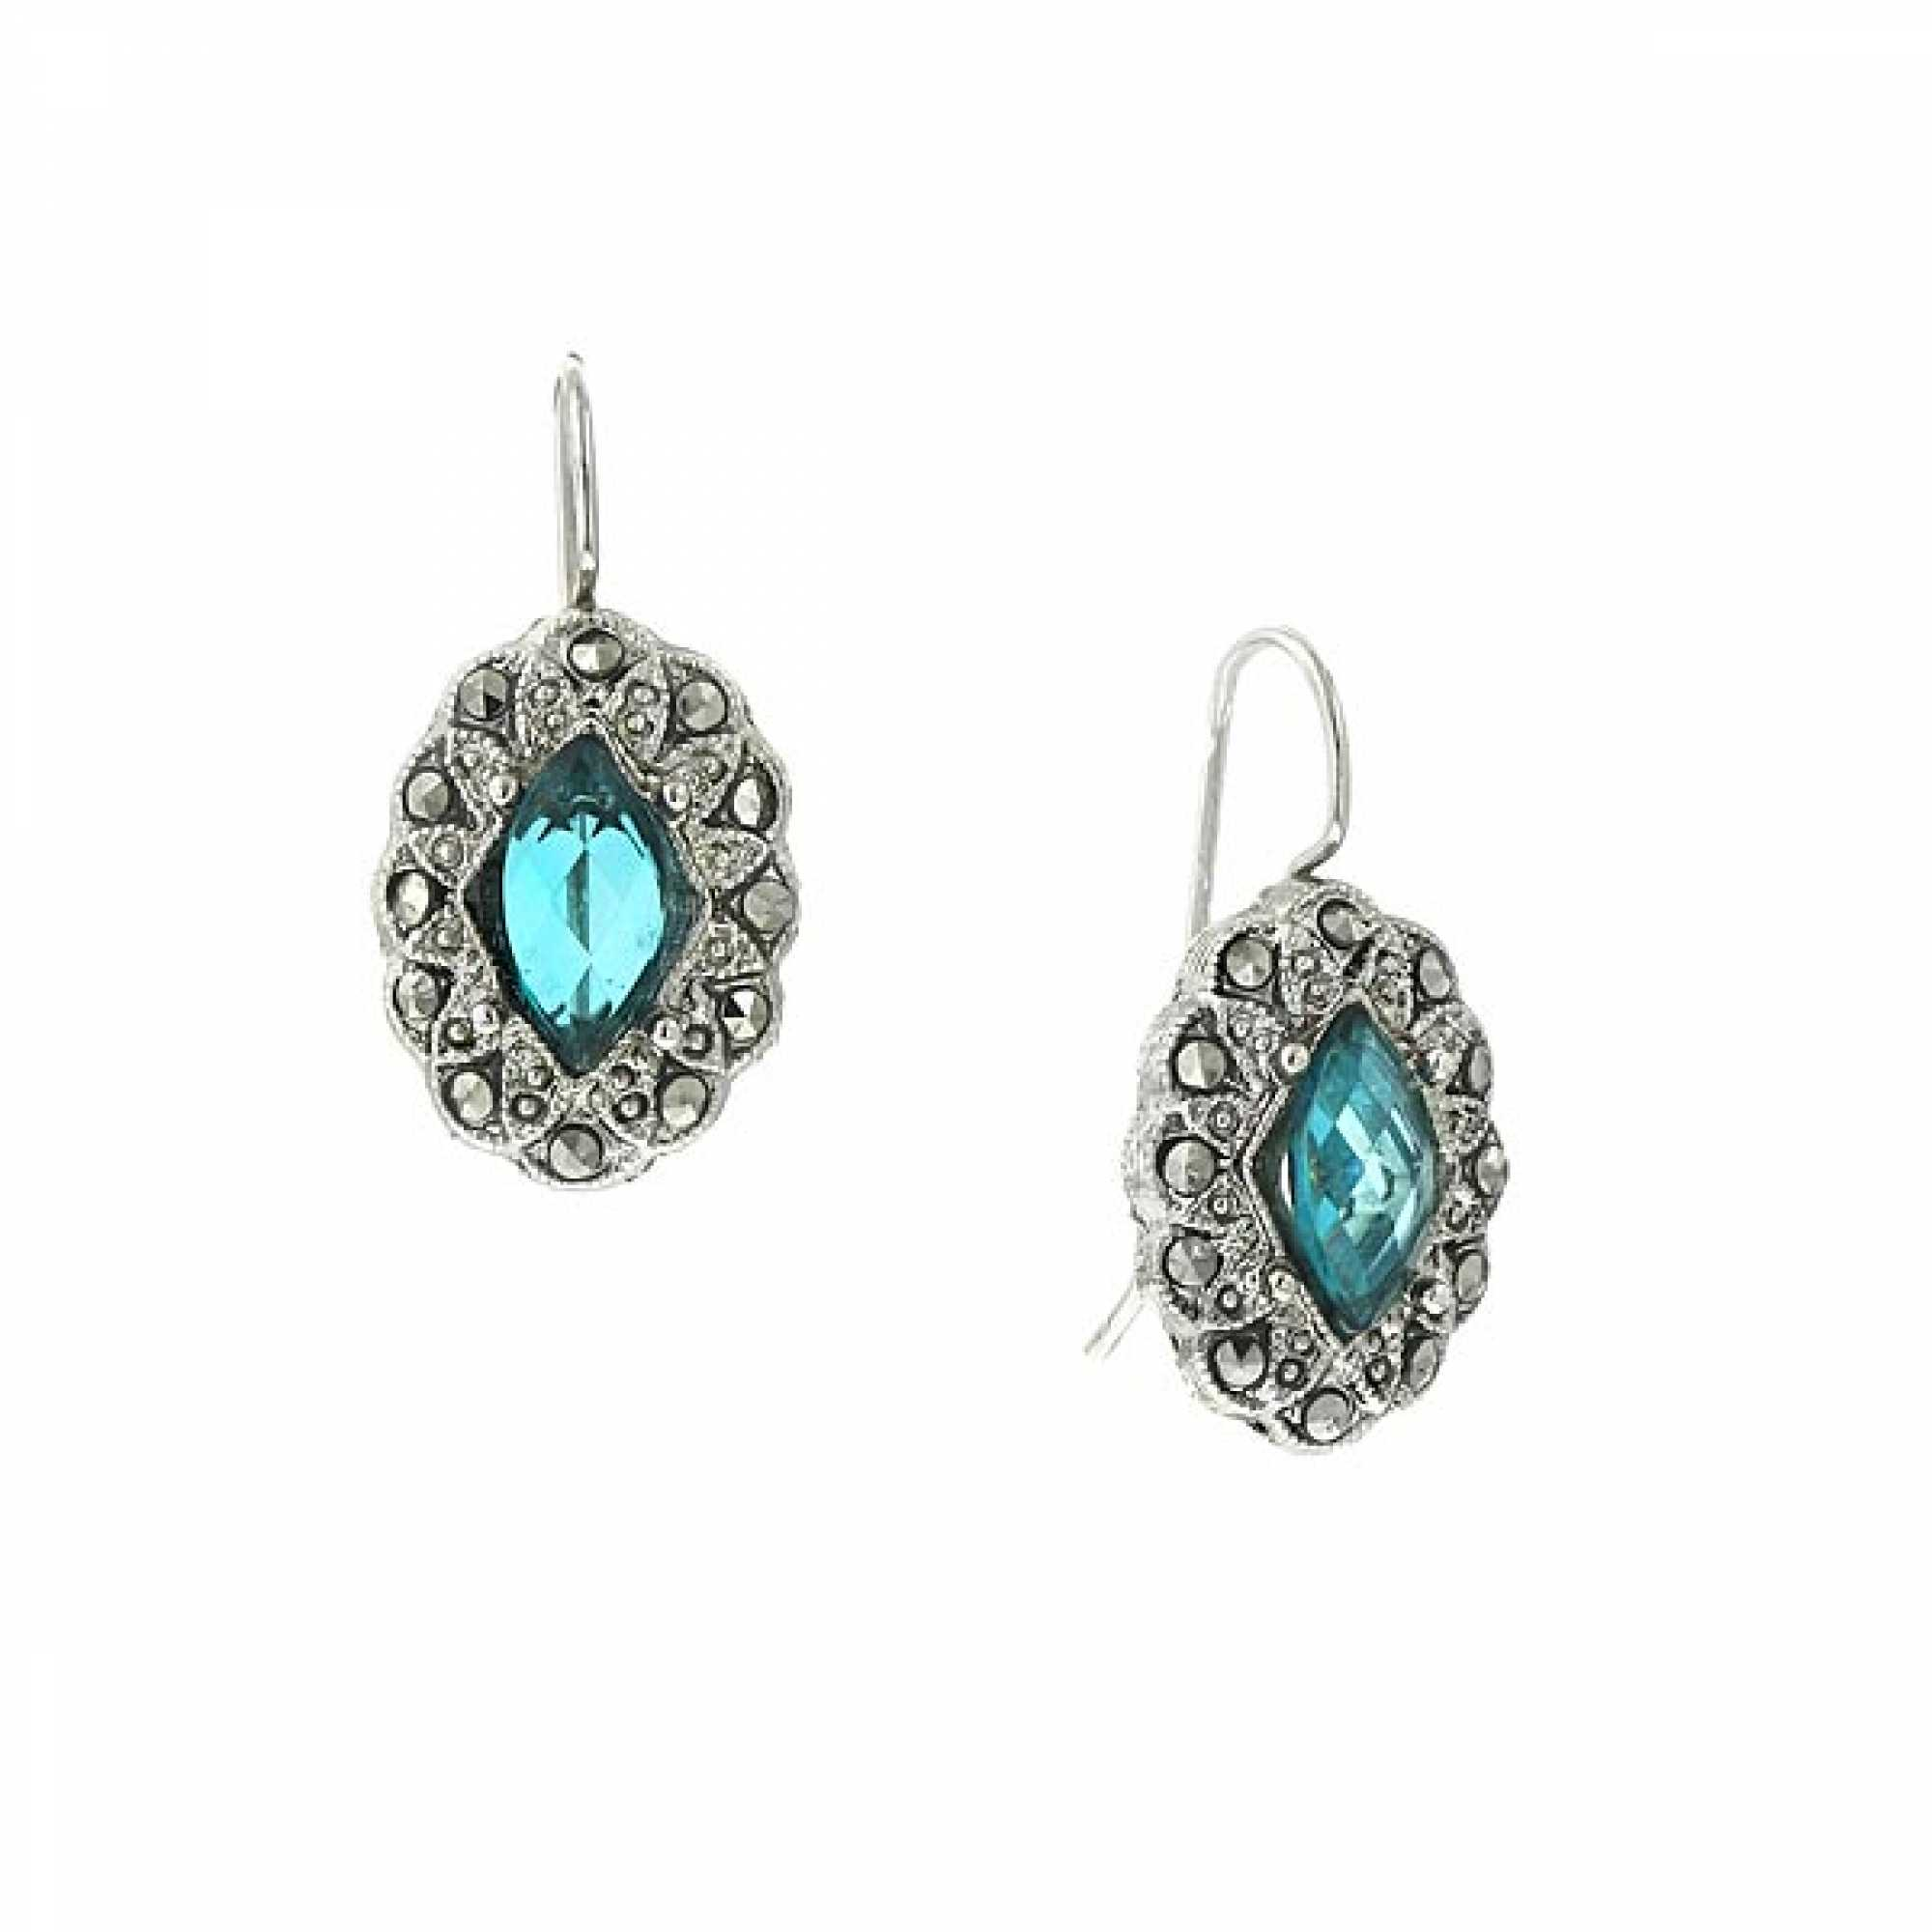 1928 jewelry teal blue and marcasite oval dangle earrings